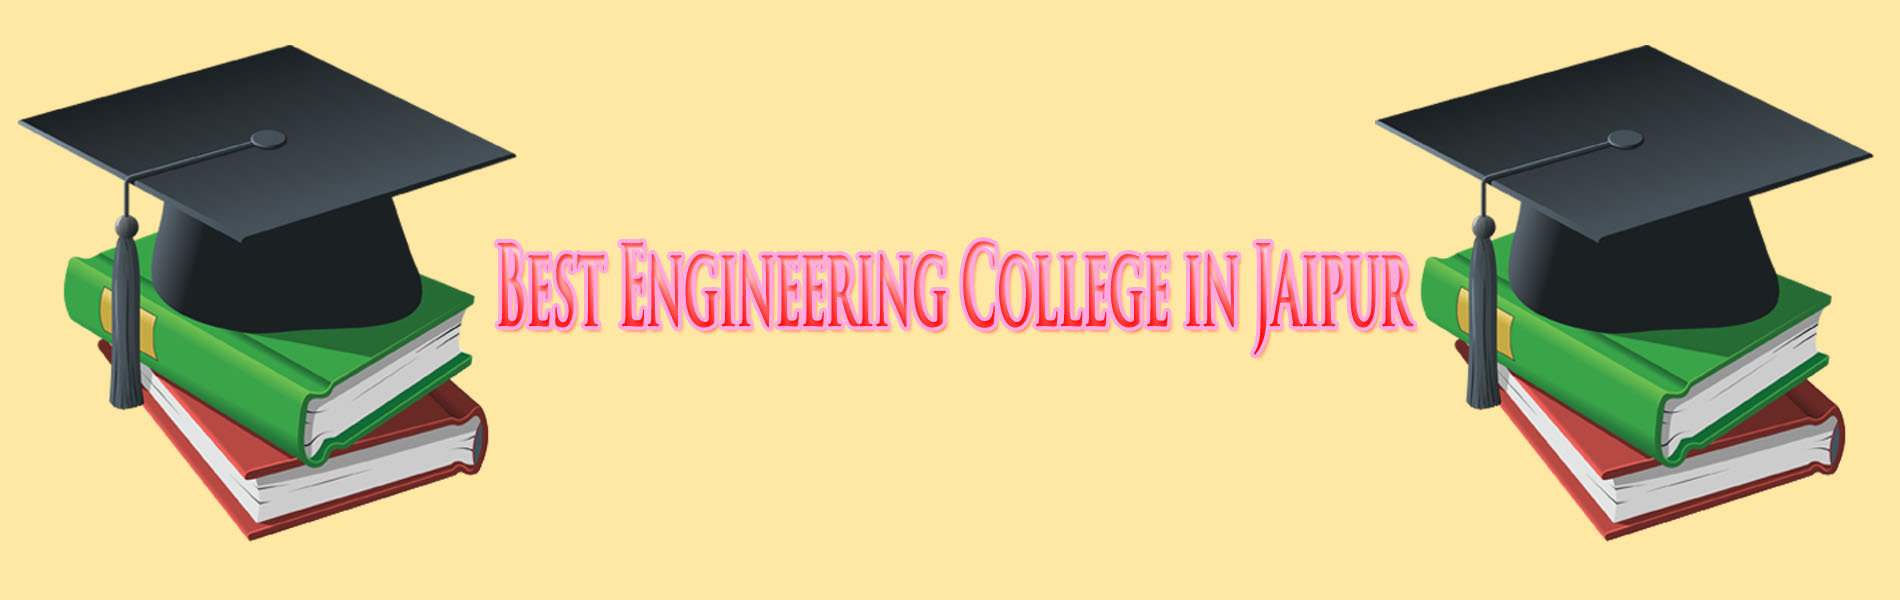 engineering-colleges-in-jaipur, Arya Logo, Arya College of Engineering and iT, Arya 1st Old Campus, Arya SP42, Arya College Jaipur, Arya College, ACEIT, Best Engineering College in Rajasthan, Arya Kukas, Arya Jaipur, Top 5 Engineering College in Rajasthan